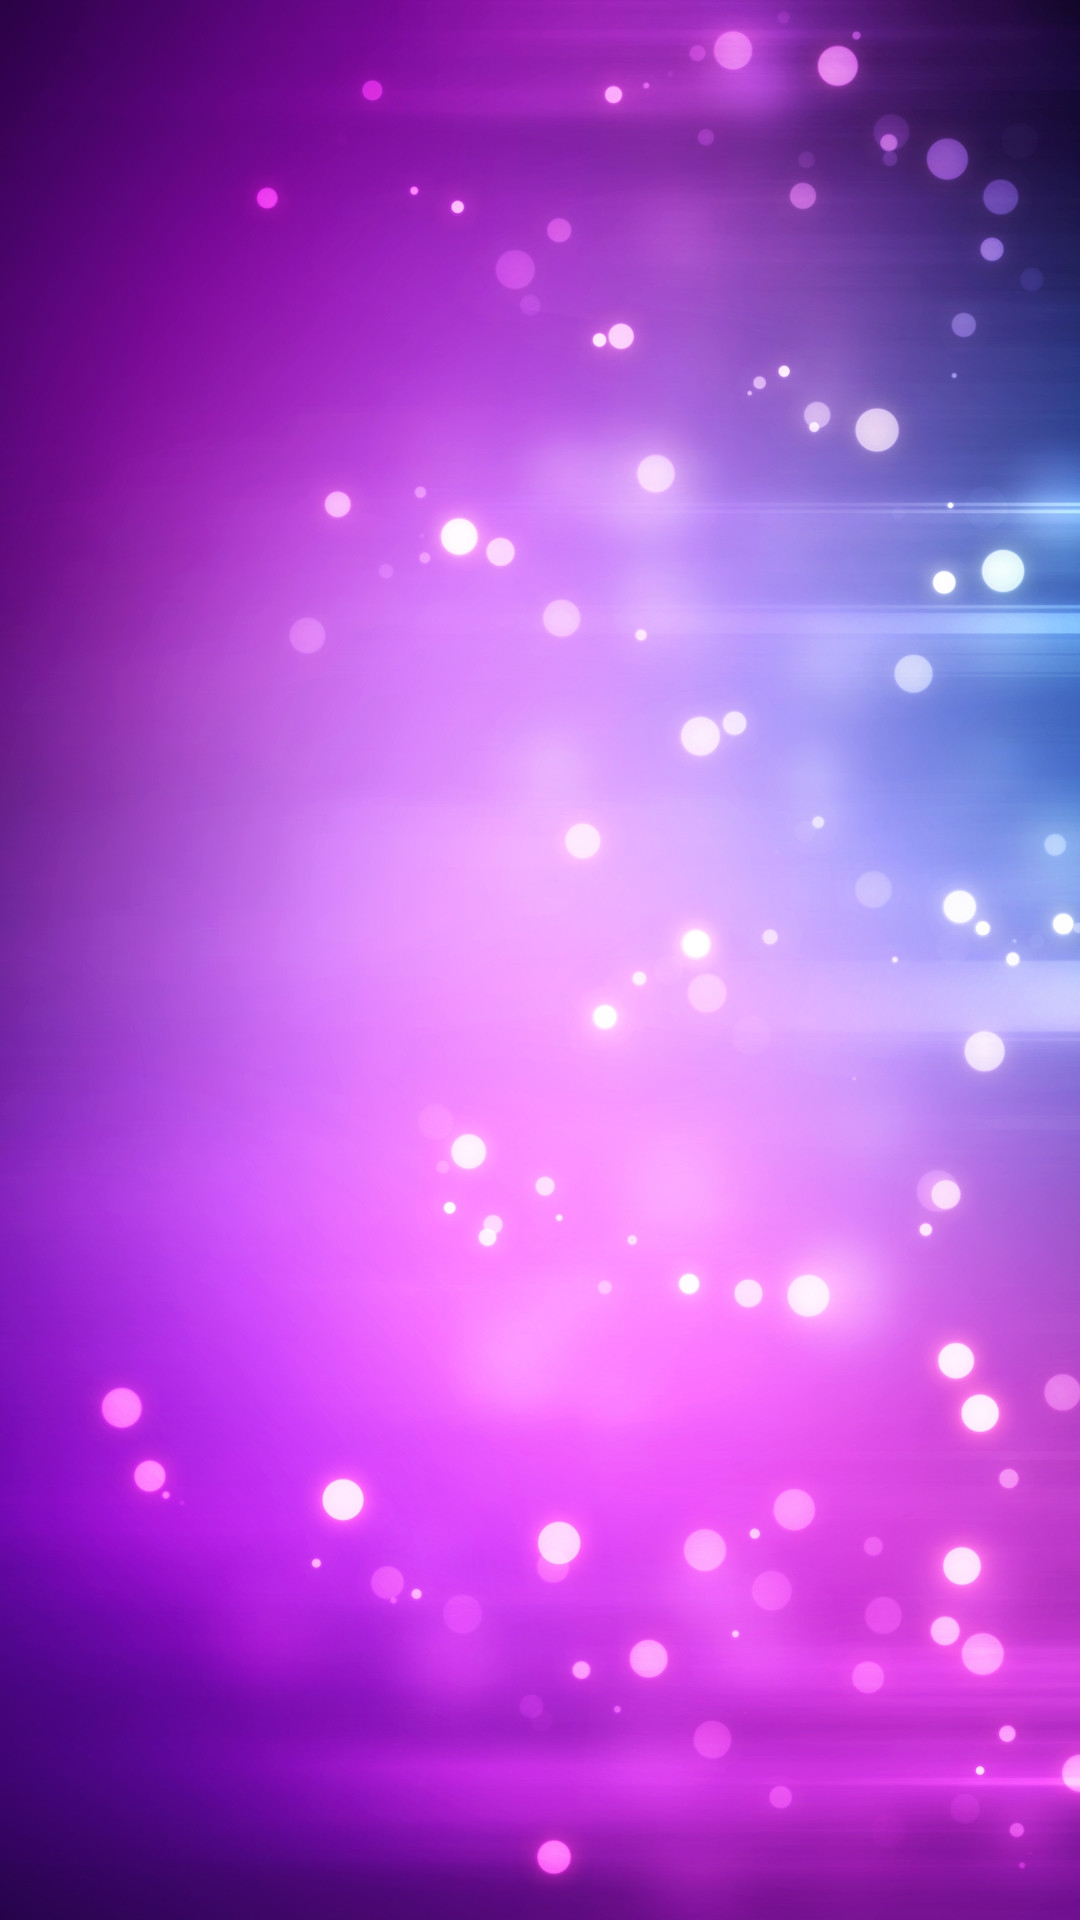 Beautiful Pink Purple Blue Abstract HD Mobile Wallpaper –  https://helpyourselfimages.com